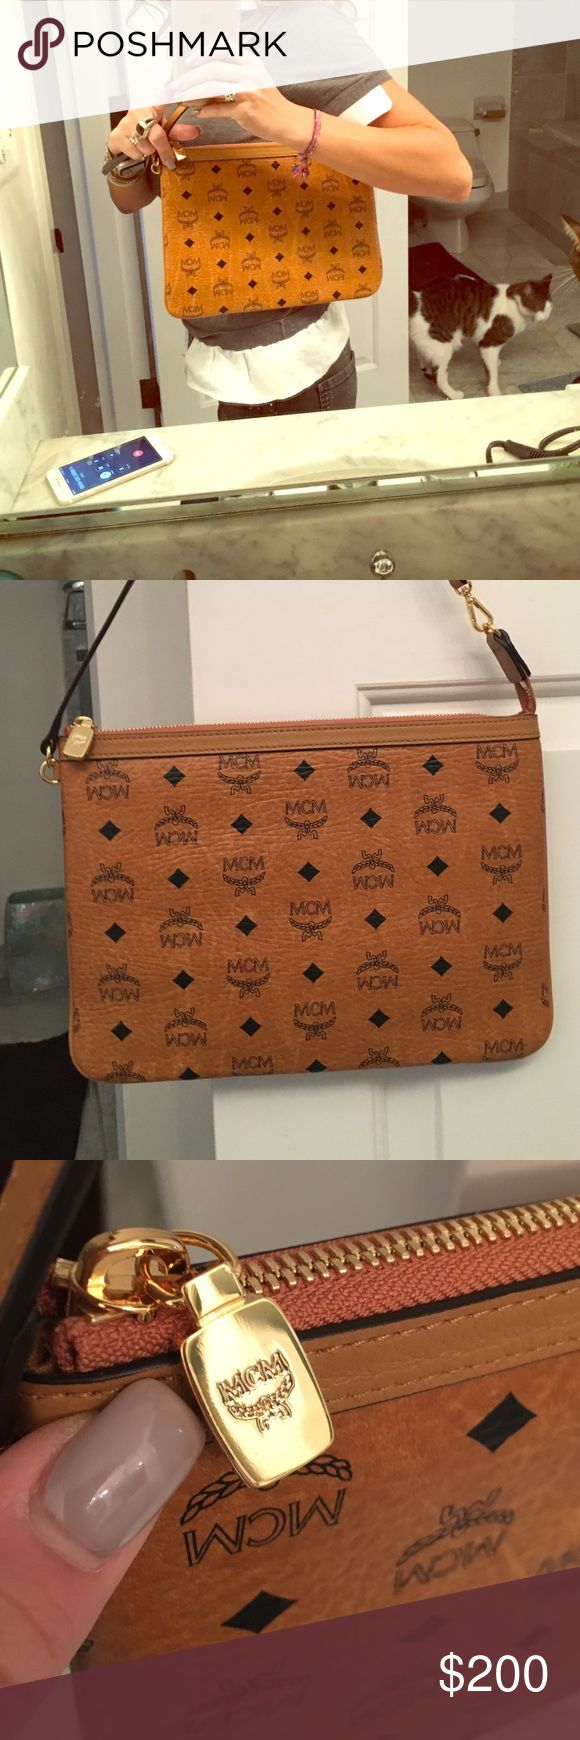 MCM Cognac small pouch - last one! ❤️❤️ Never worn, new with tags, iconic Authentic MCM bag! MCM Bags Shoulder Bags